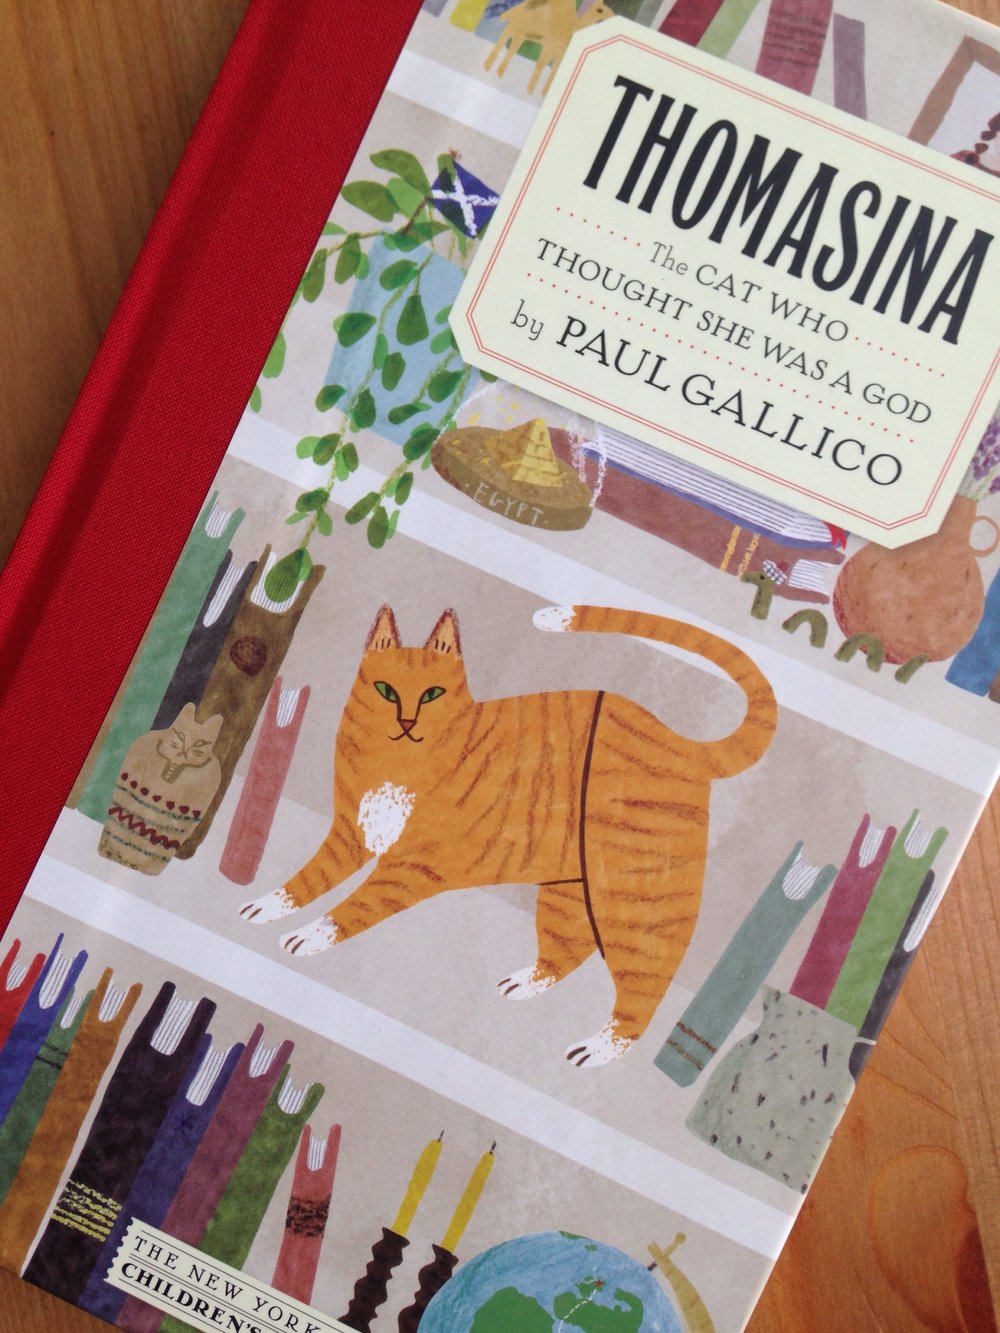 Close up of book cover for Thomasina - The Cat Who Thought She Was a God by Paul Gallico